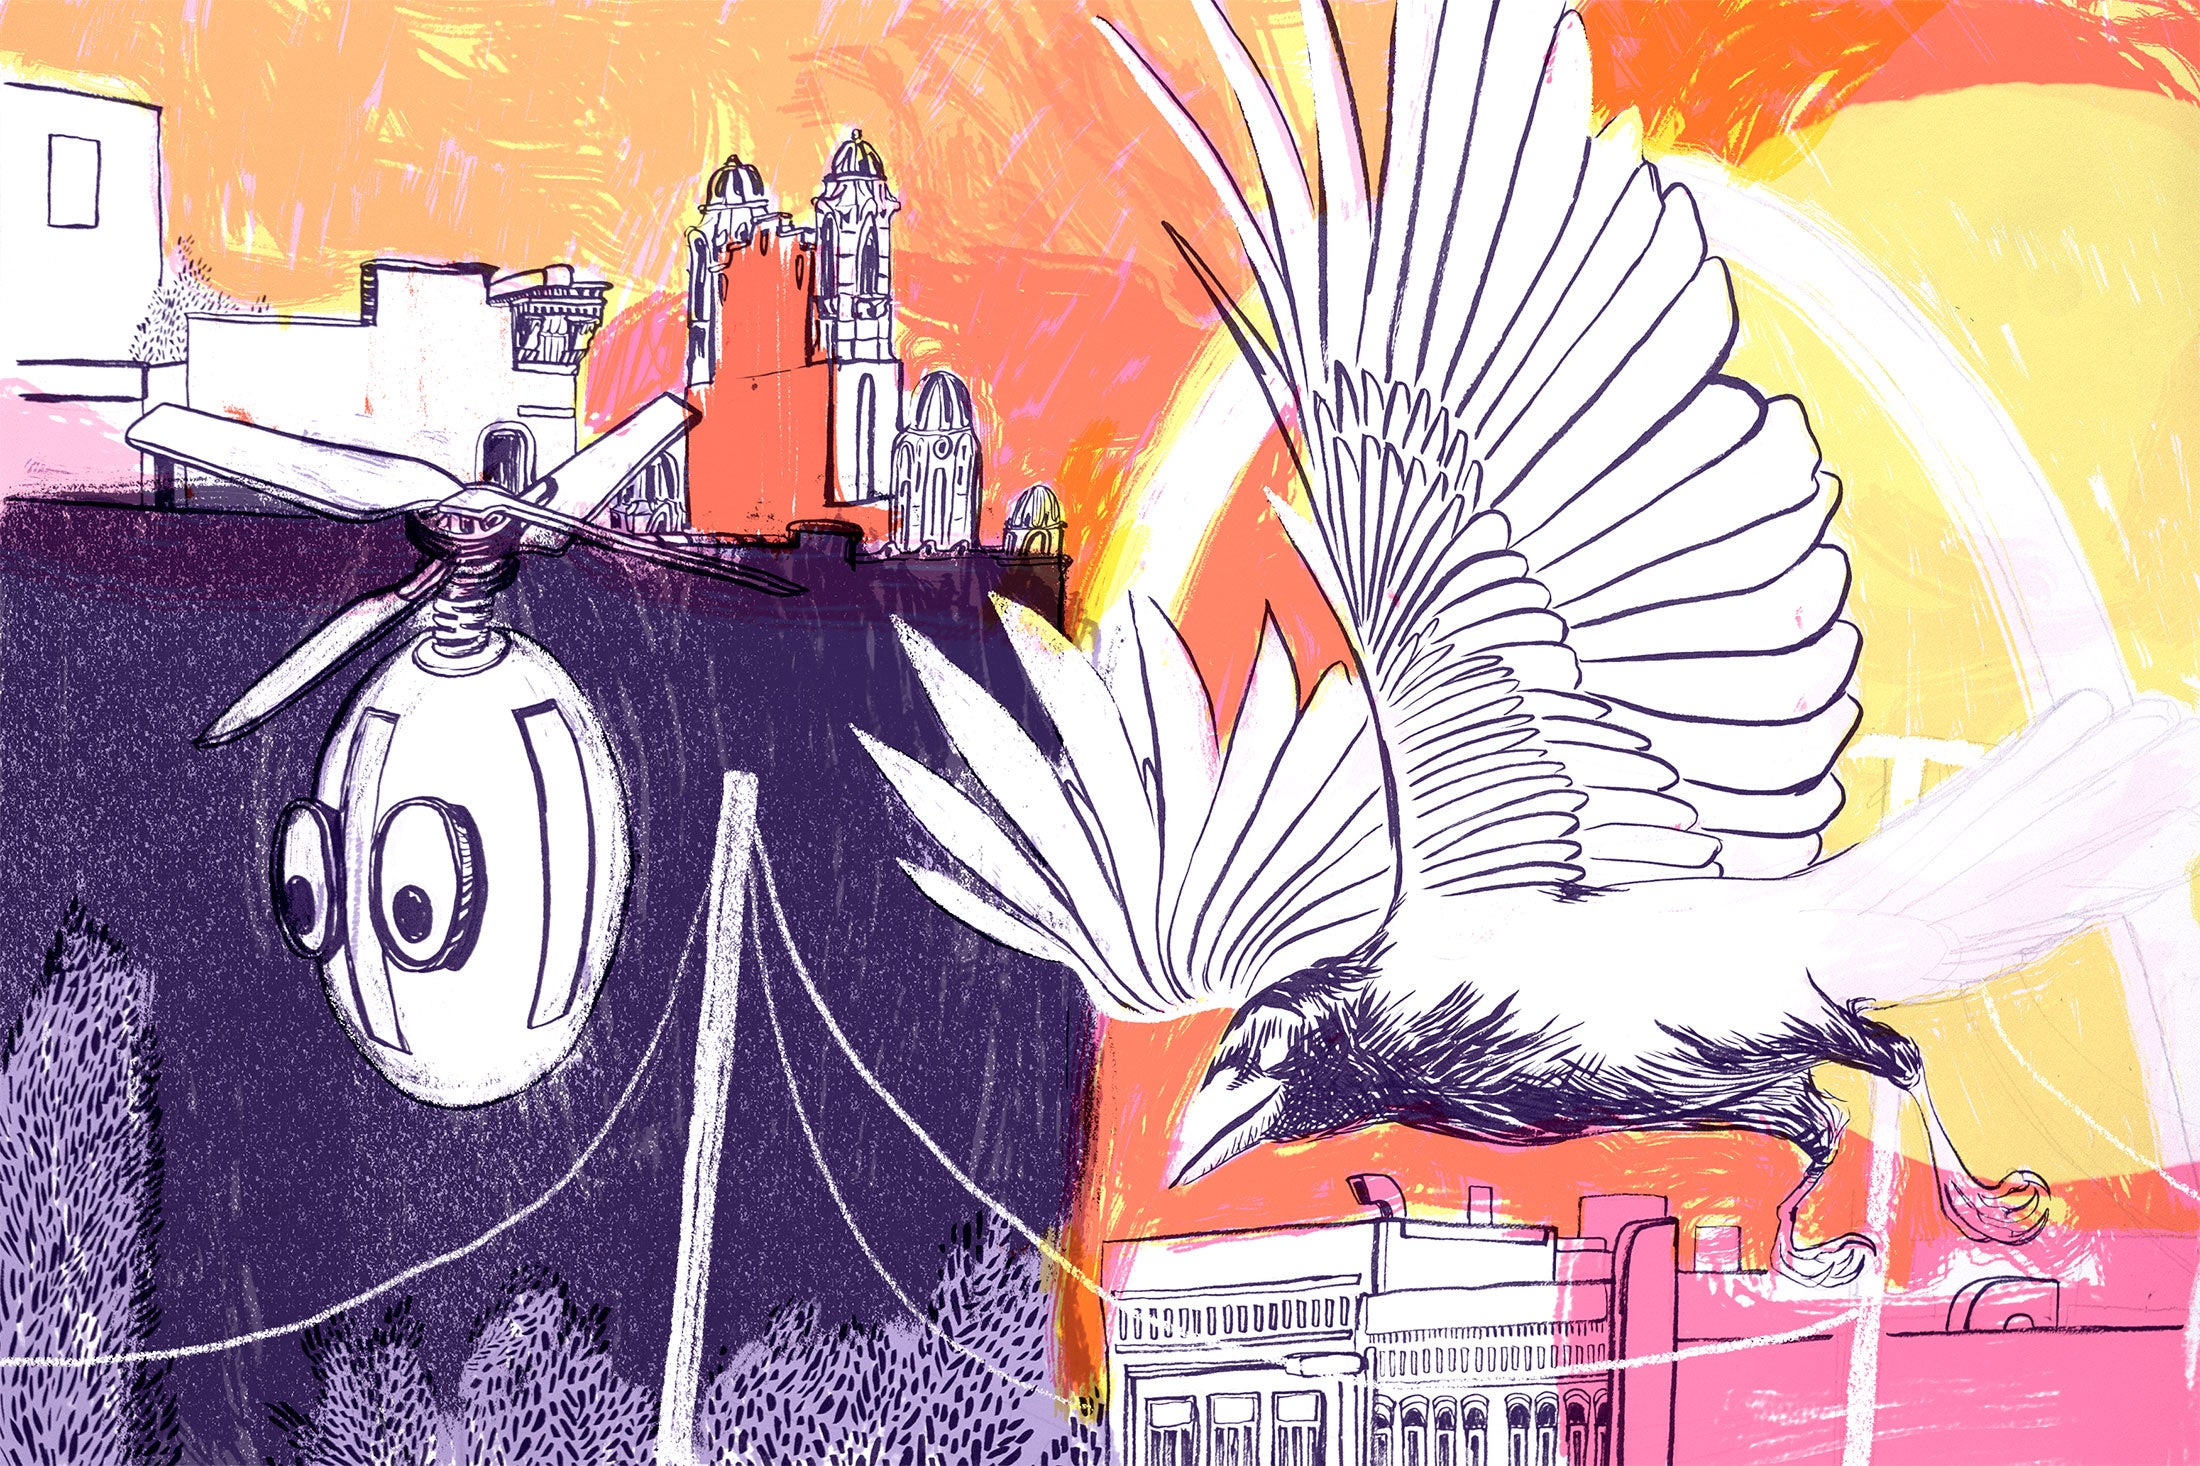 A drone with eyes flies next to a crow over the skyline of East St. Louis.